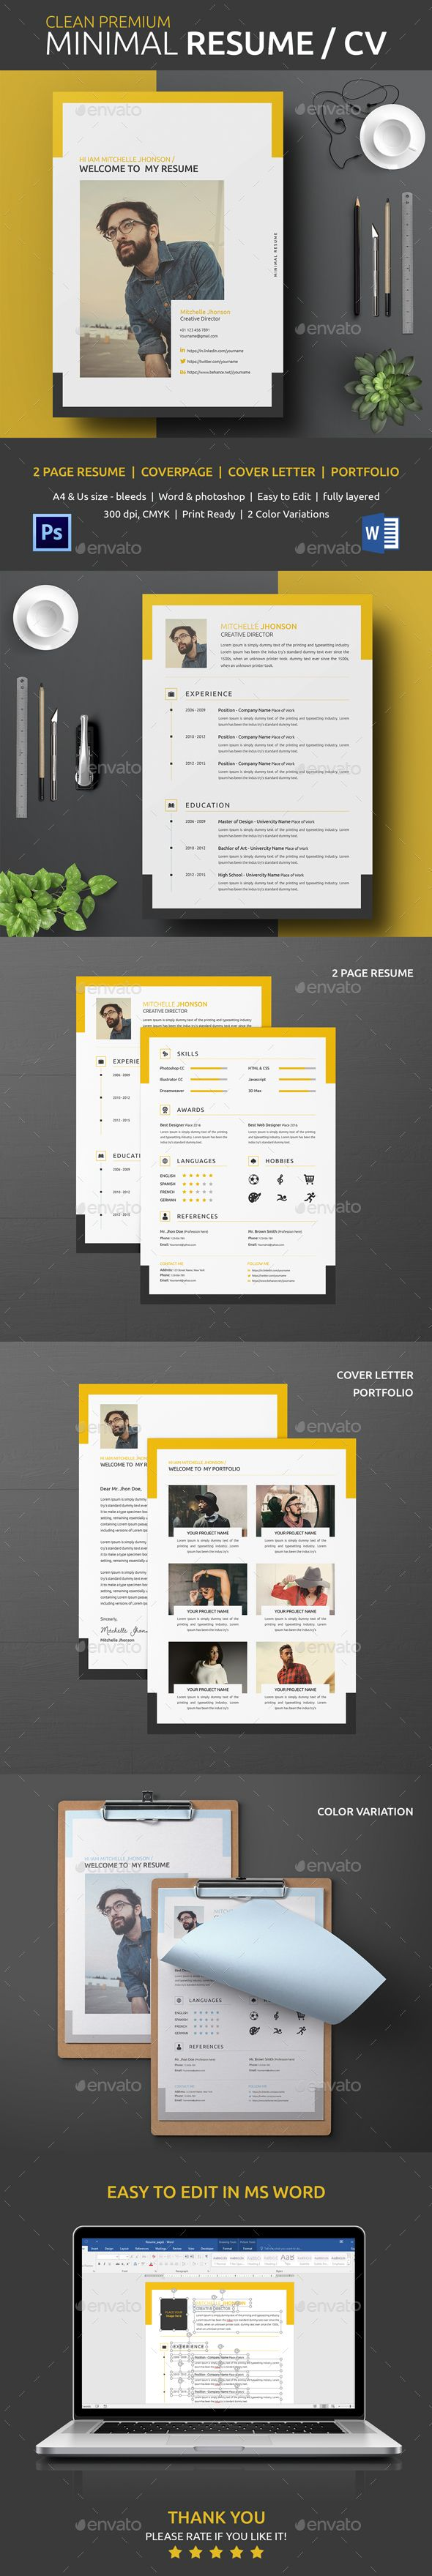 how to make cover letter of resume%0A TOP Professional Resume Templates Pinterest Buy Resume by themedevisers on  GraphicRiver Resume CV Template is a